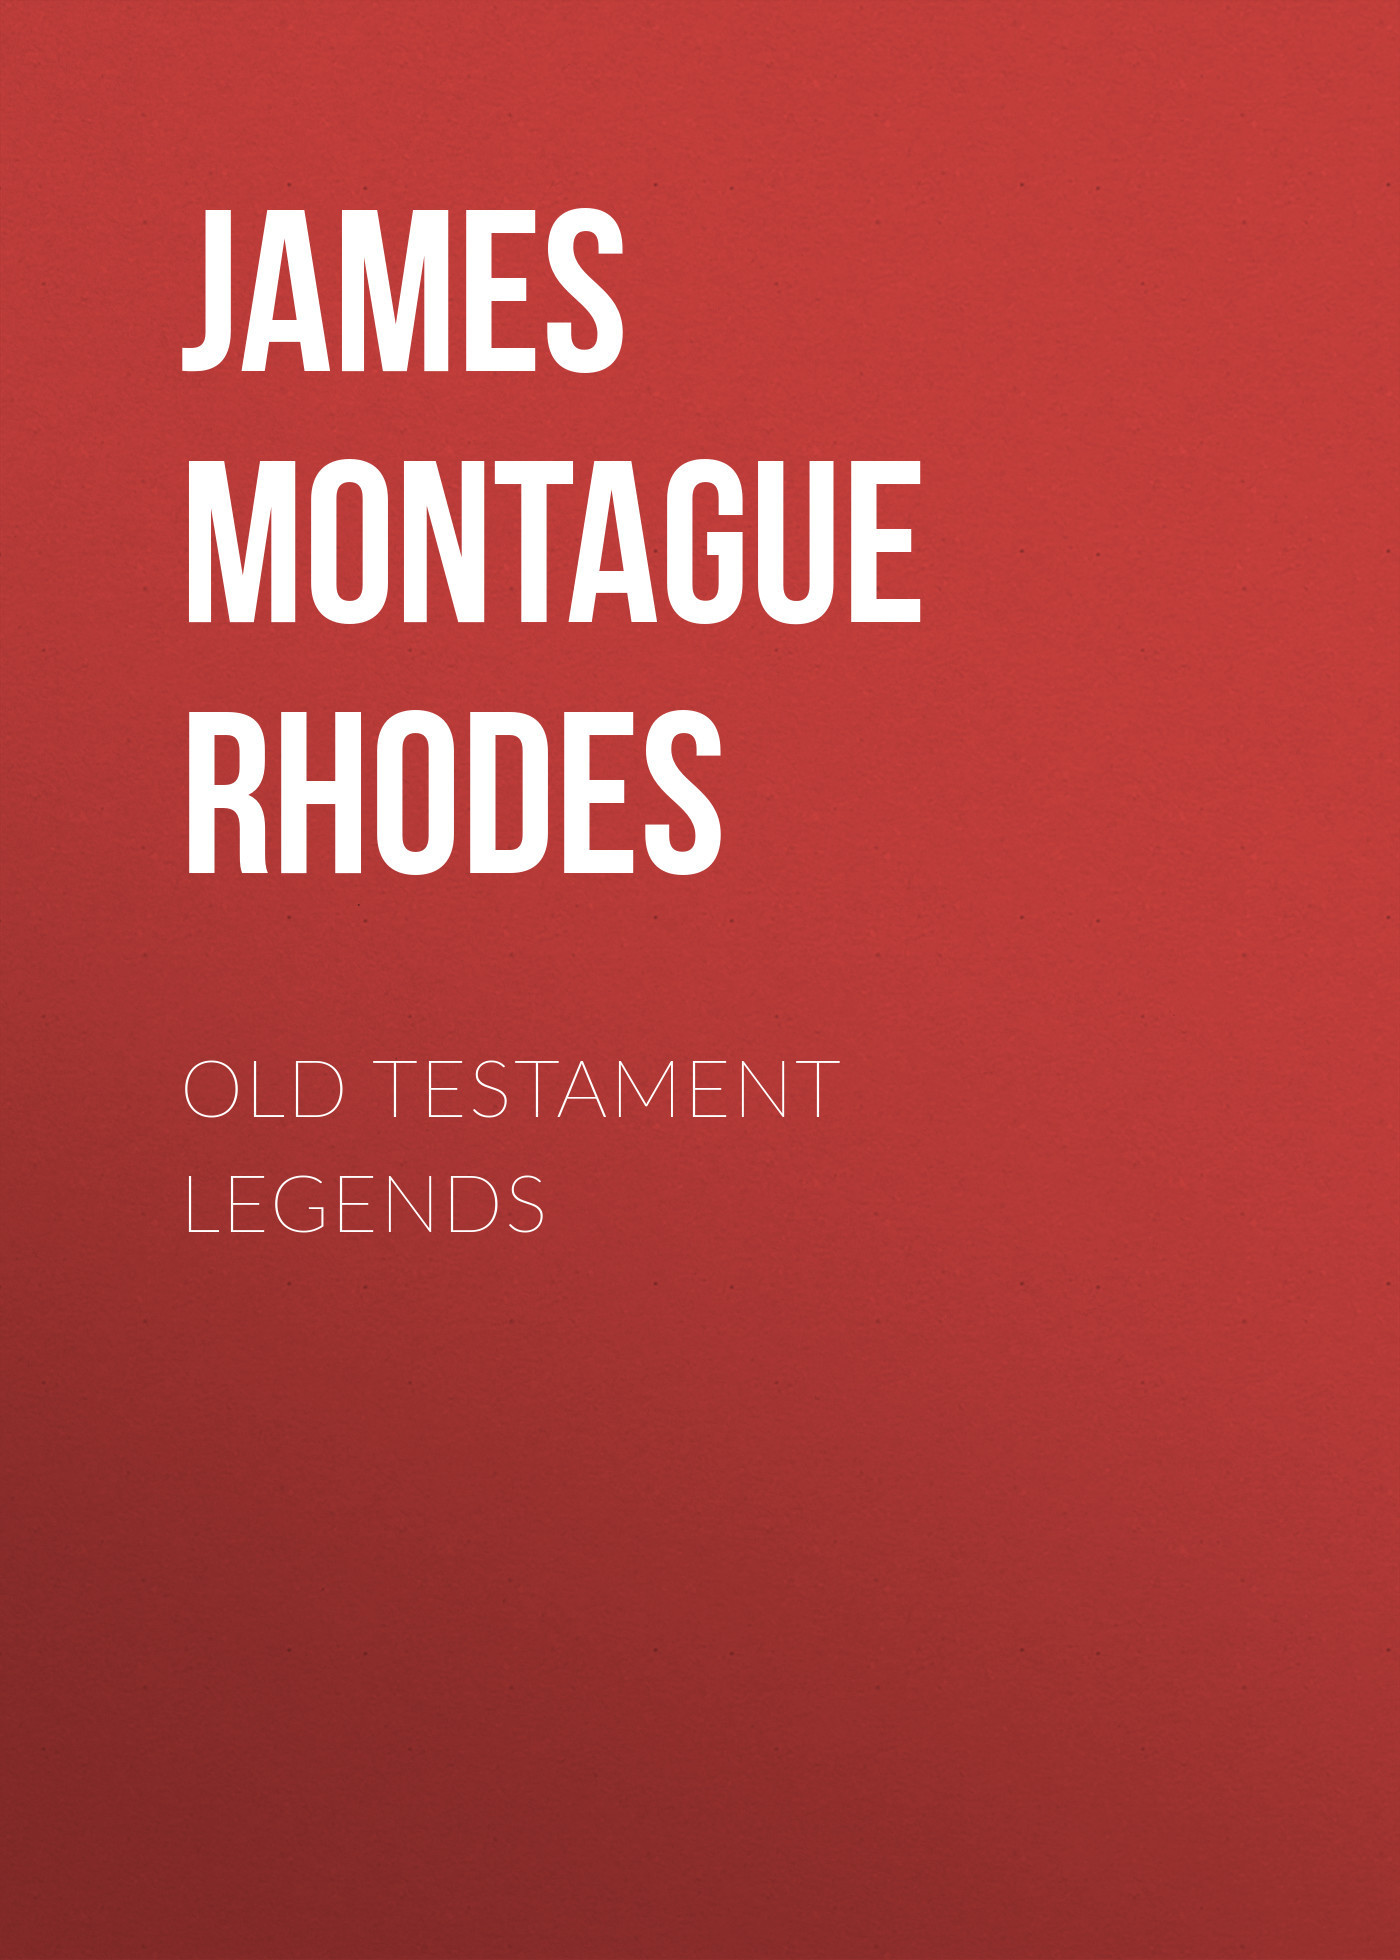 James Montague Rhodes Old Testament Legends